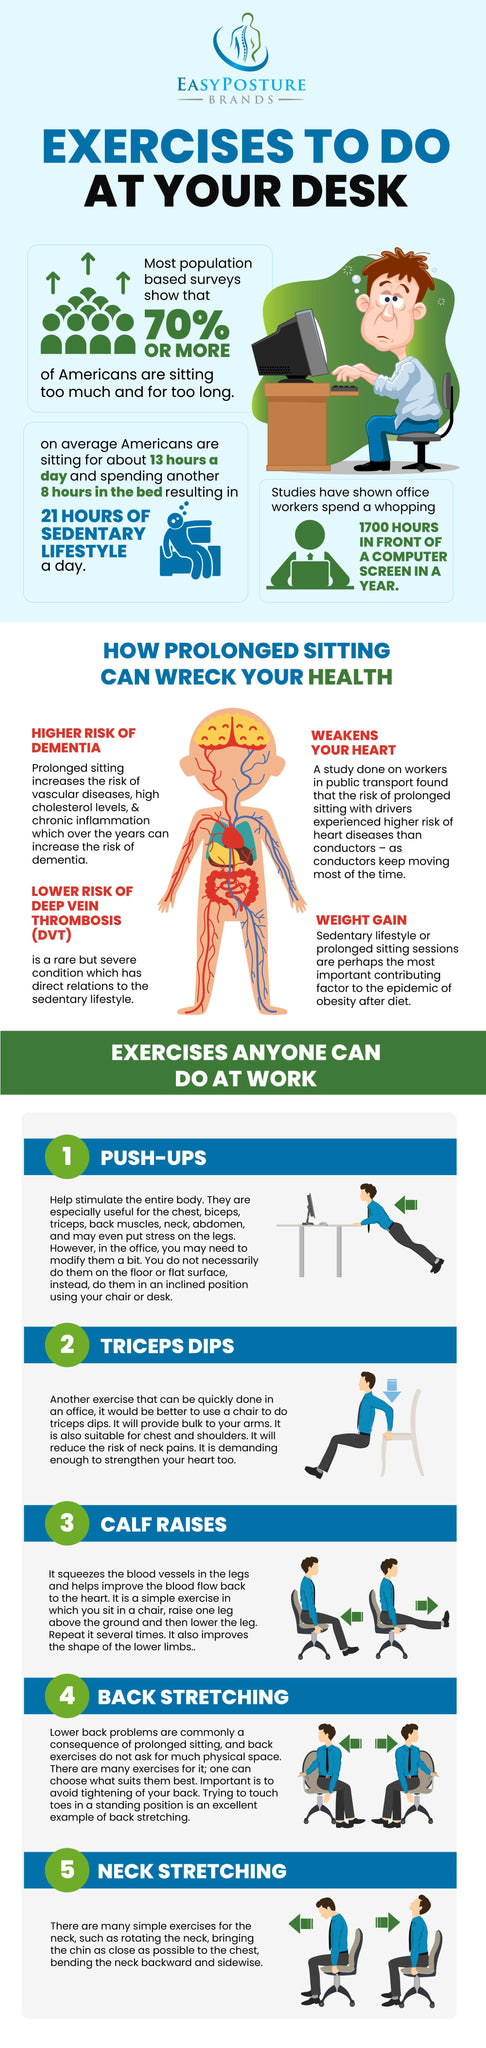 exercises to do at your desk for sitting back pain